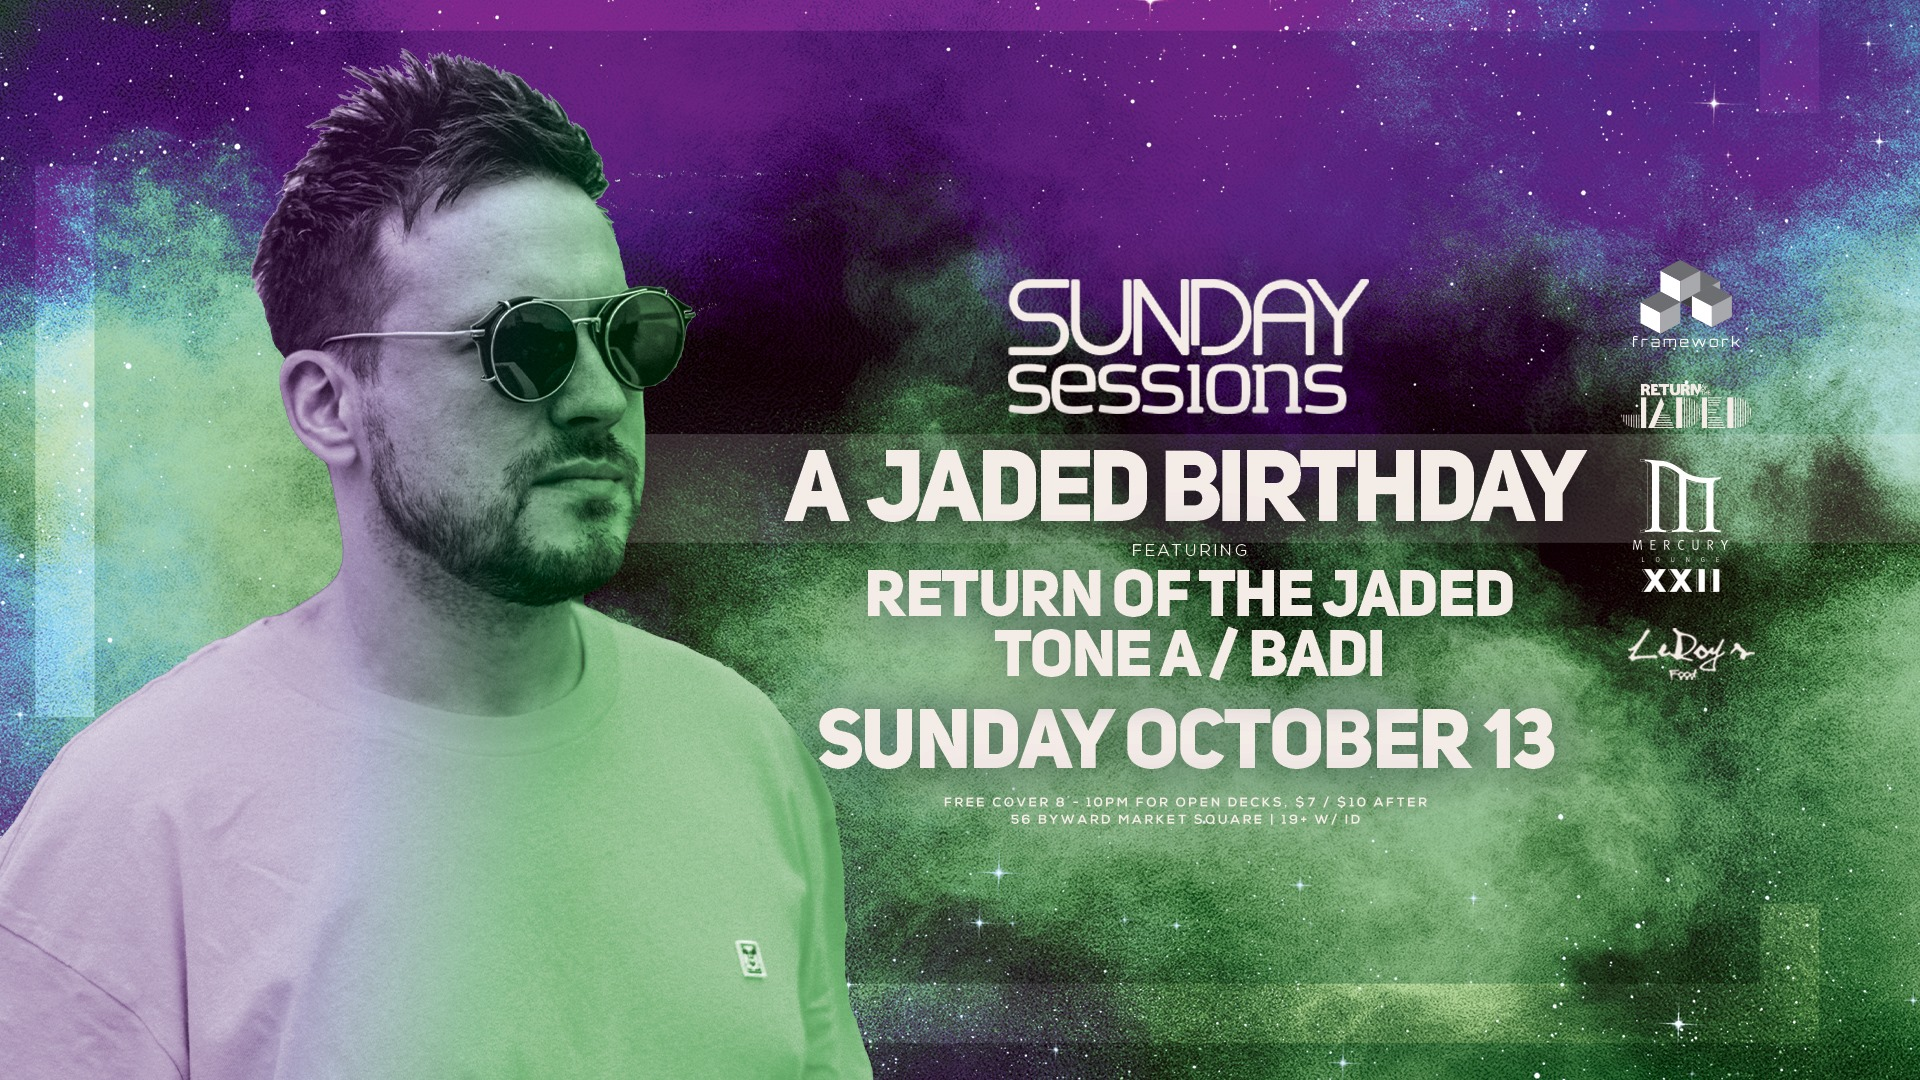 A Jaded Birthday at Sunday Sessions